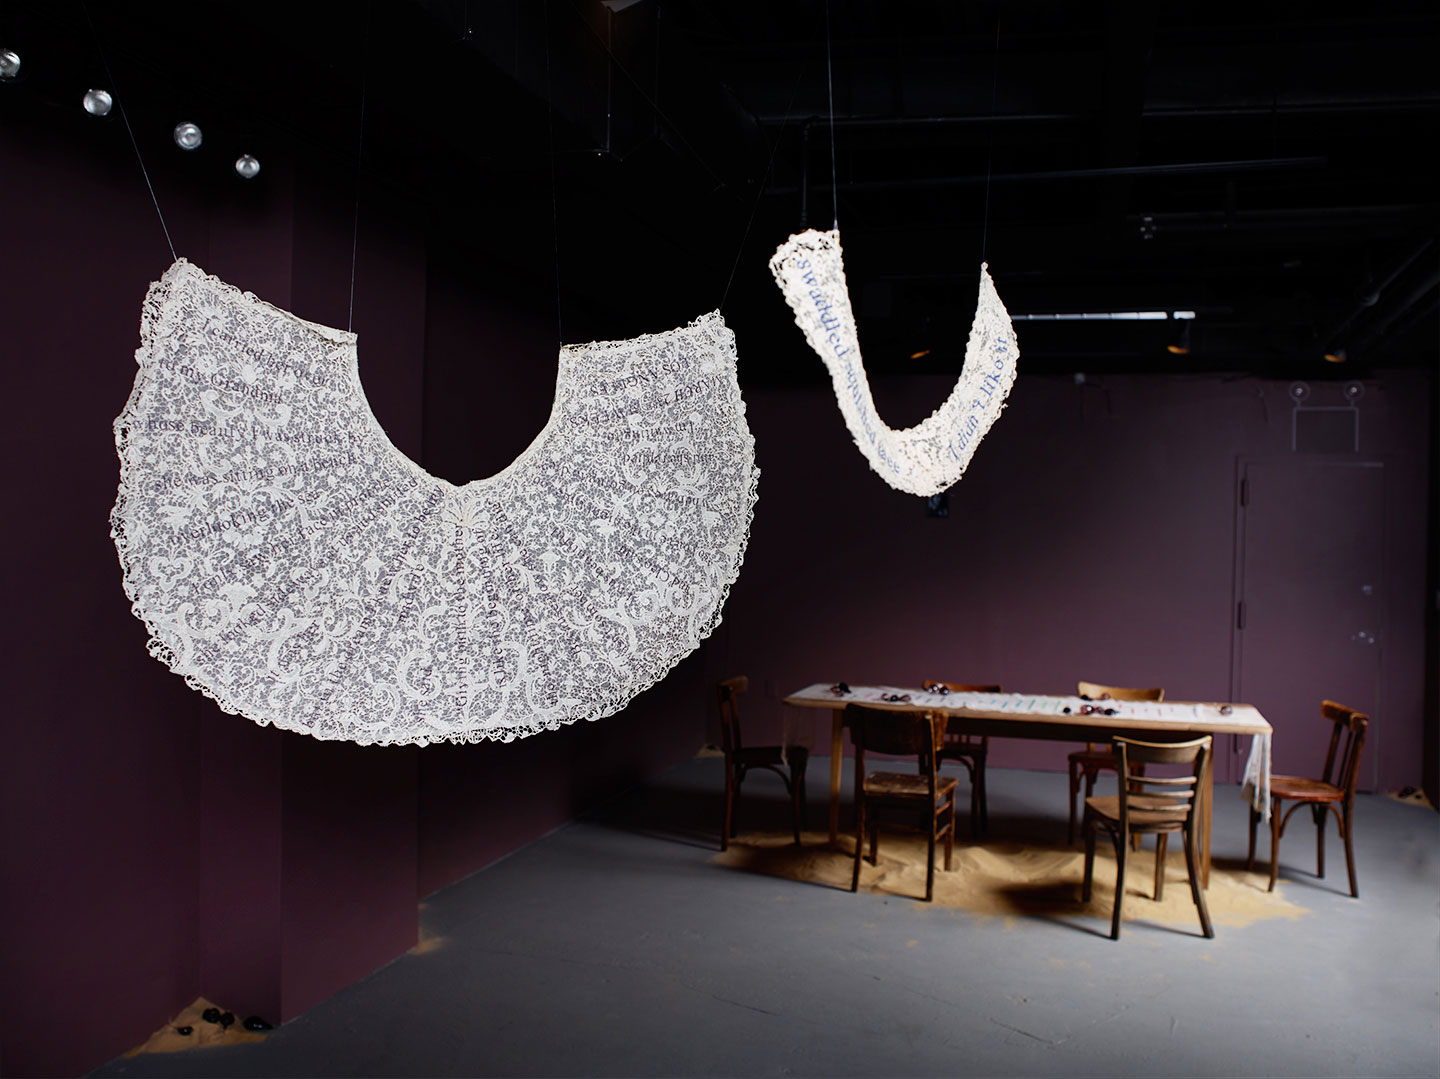 Installation art at Garis & Hahn Gallery in New York City of fiber art by Zoe Buckman.